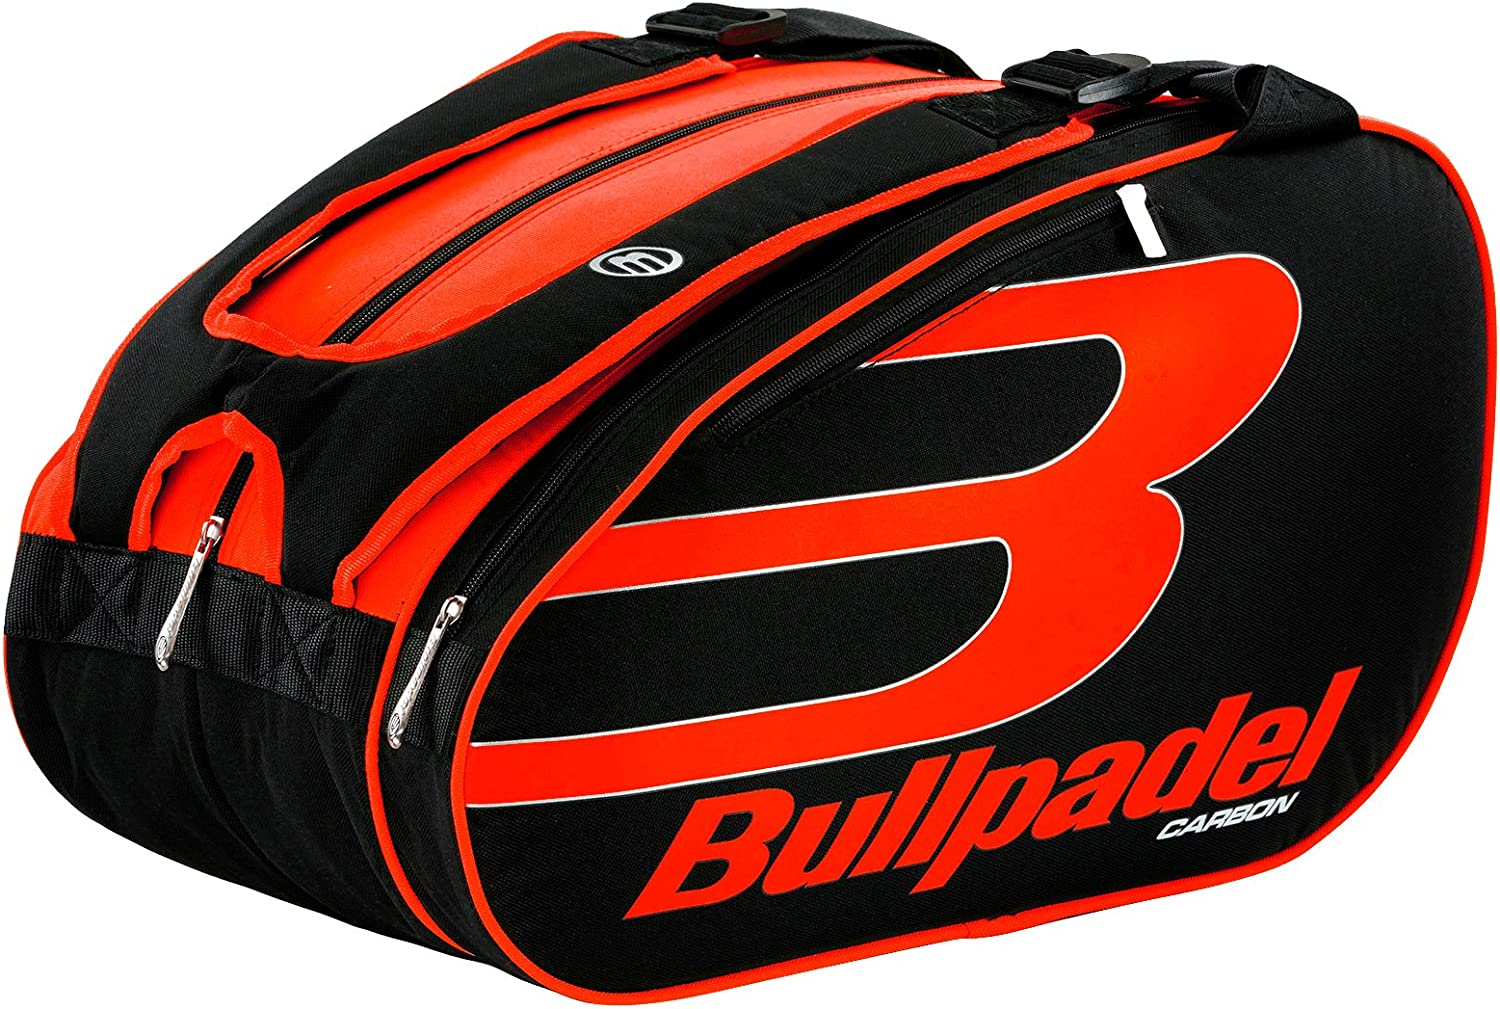 Paletero Bullpadel 17004 Orange: Amazon.es: Deportes y aire libre